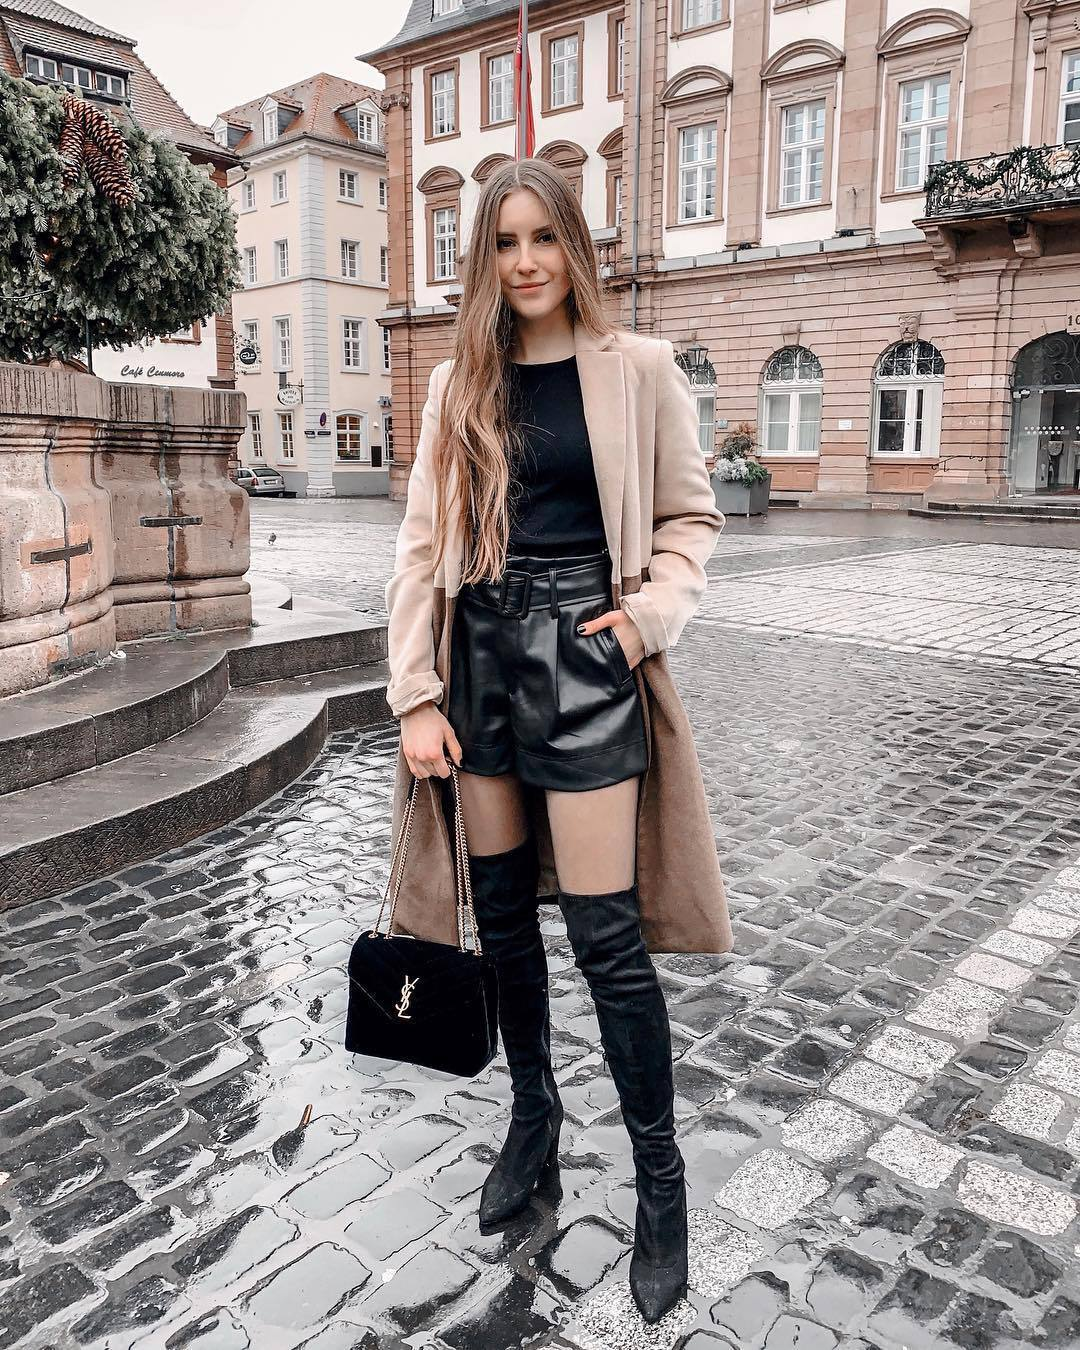 shorts leather shorts black boots over the knee boots ysl bag camel coat black top